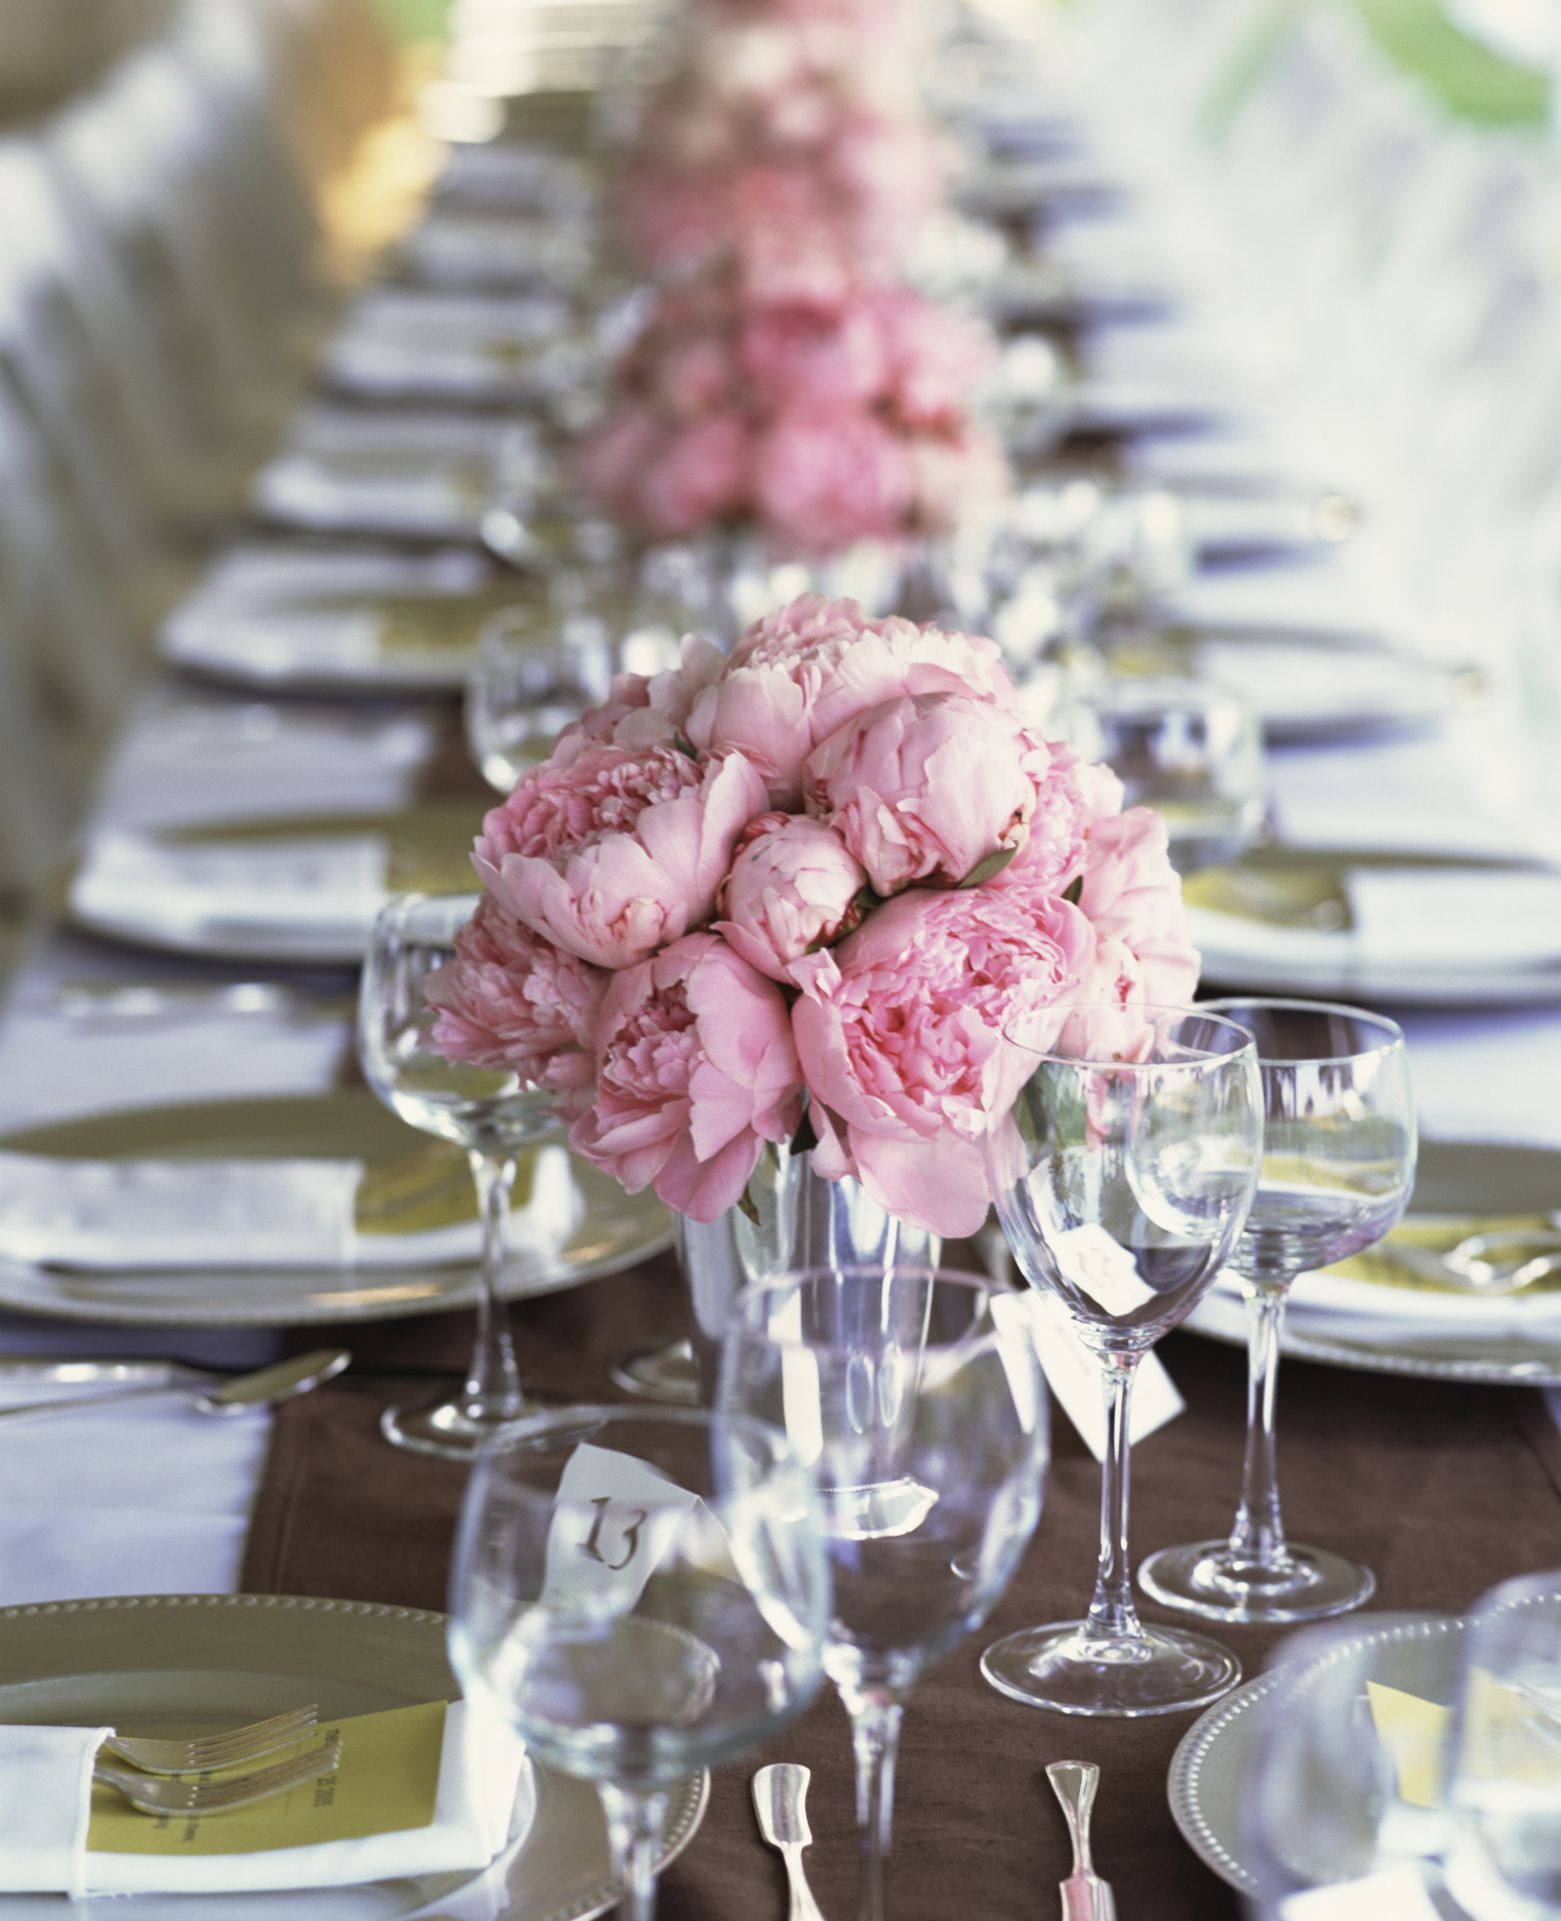 Who Should Pay For Wedding Flowers?